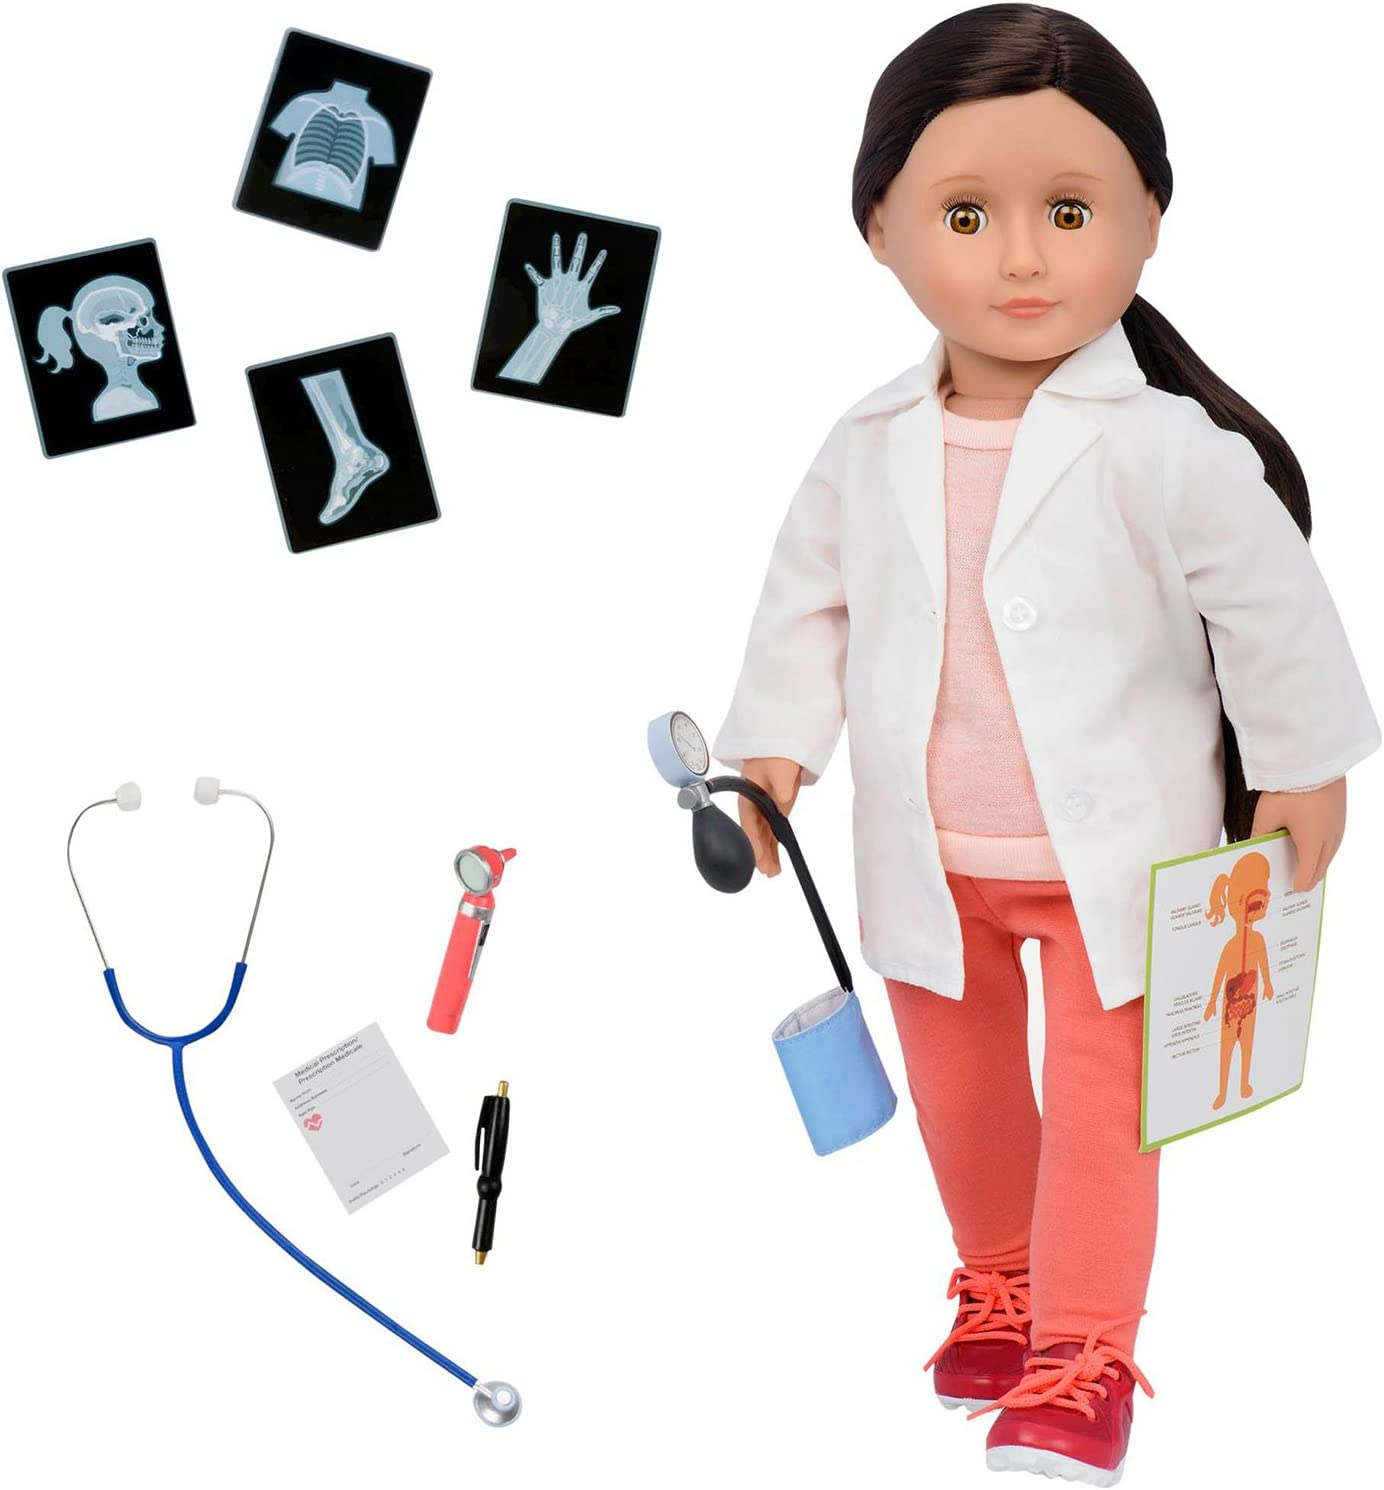 Our Generation 18 Inch Doctor Doll Deluxe Set, Nicola, Medical Accessories, Stem